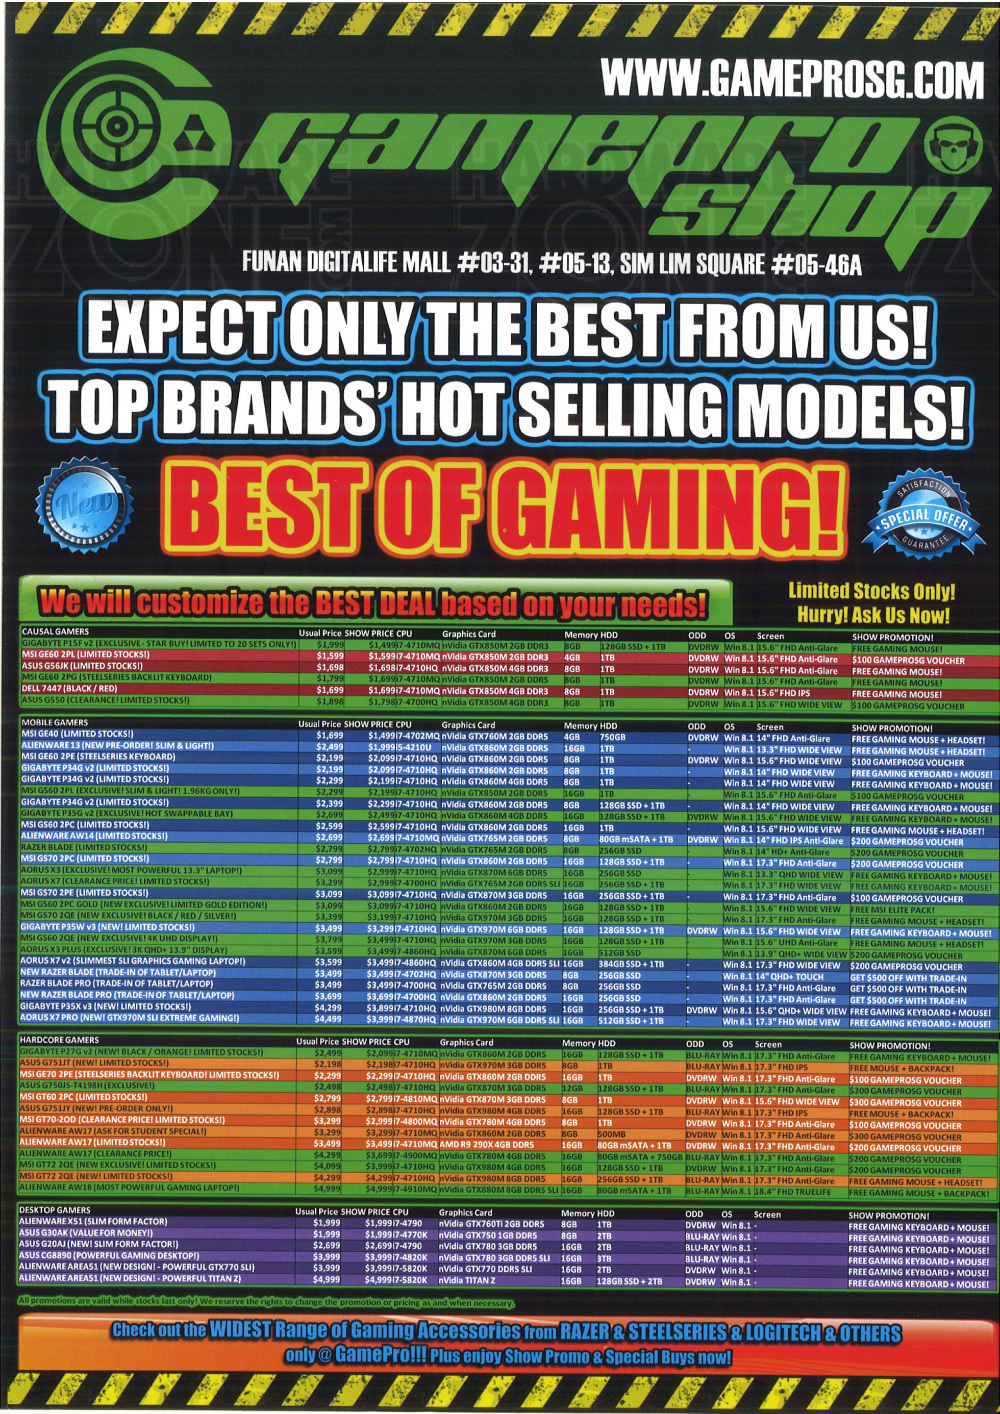 GameProSG gaming notebooks Brochures from SITEX 2014